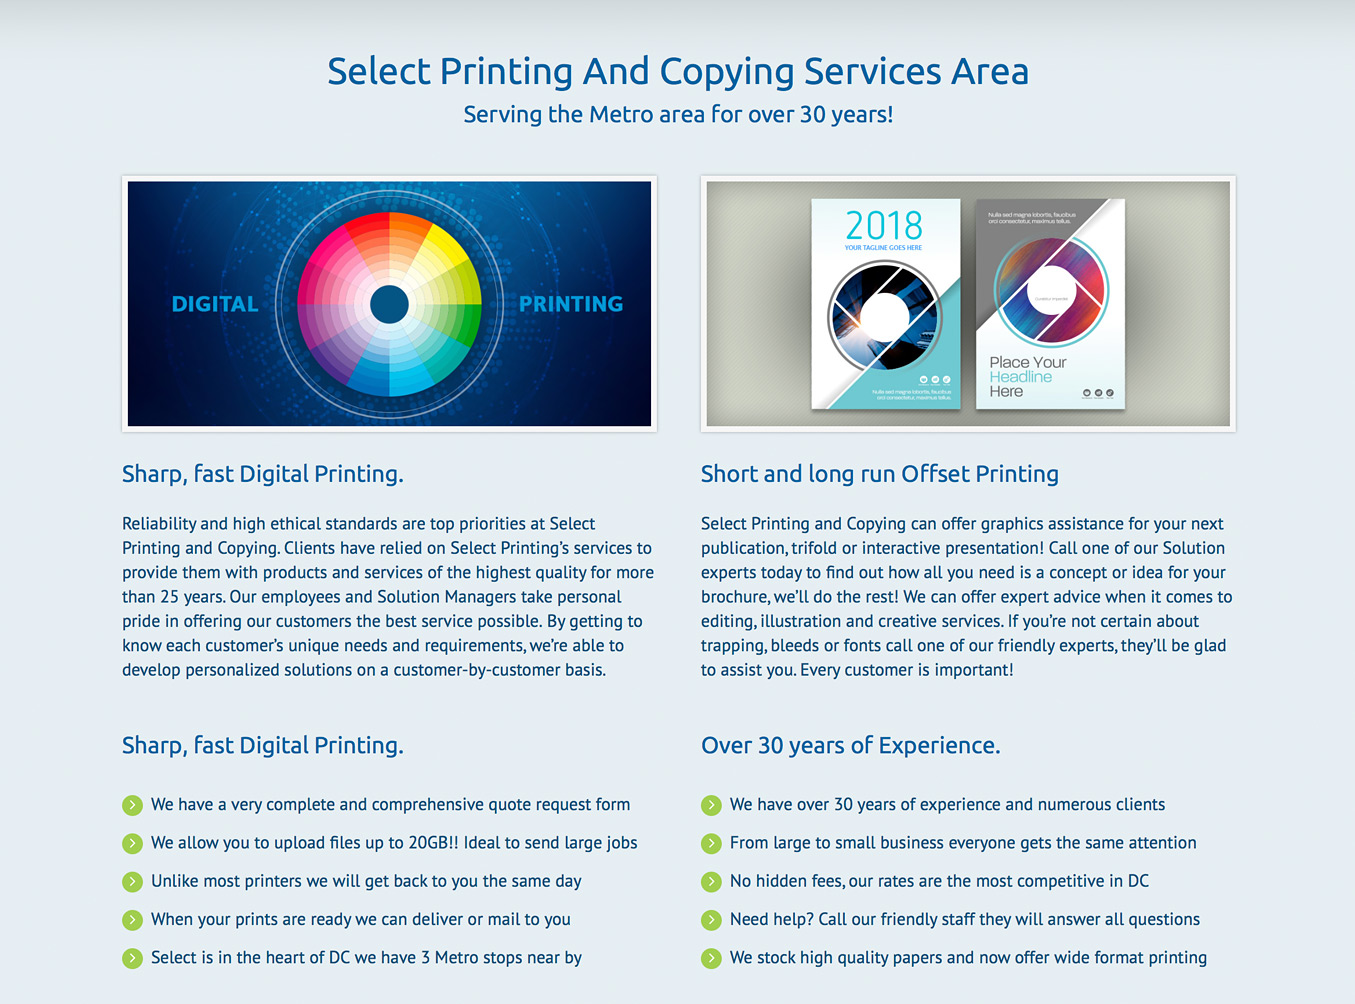 Select Printing and Copying